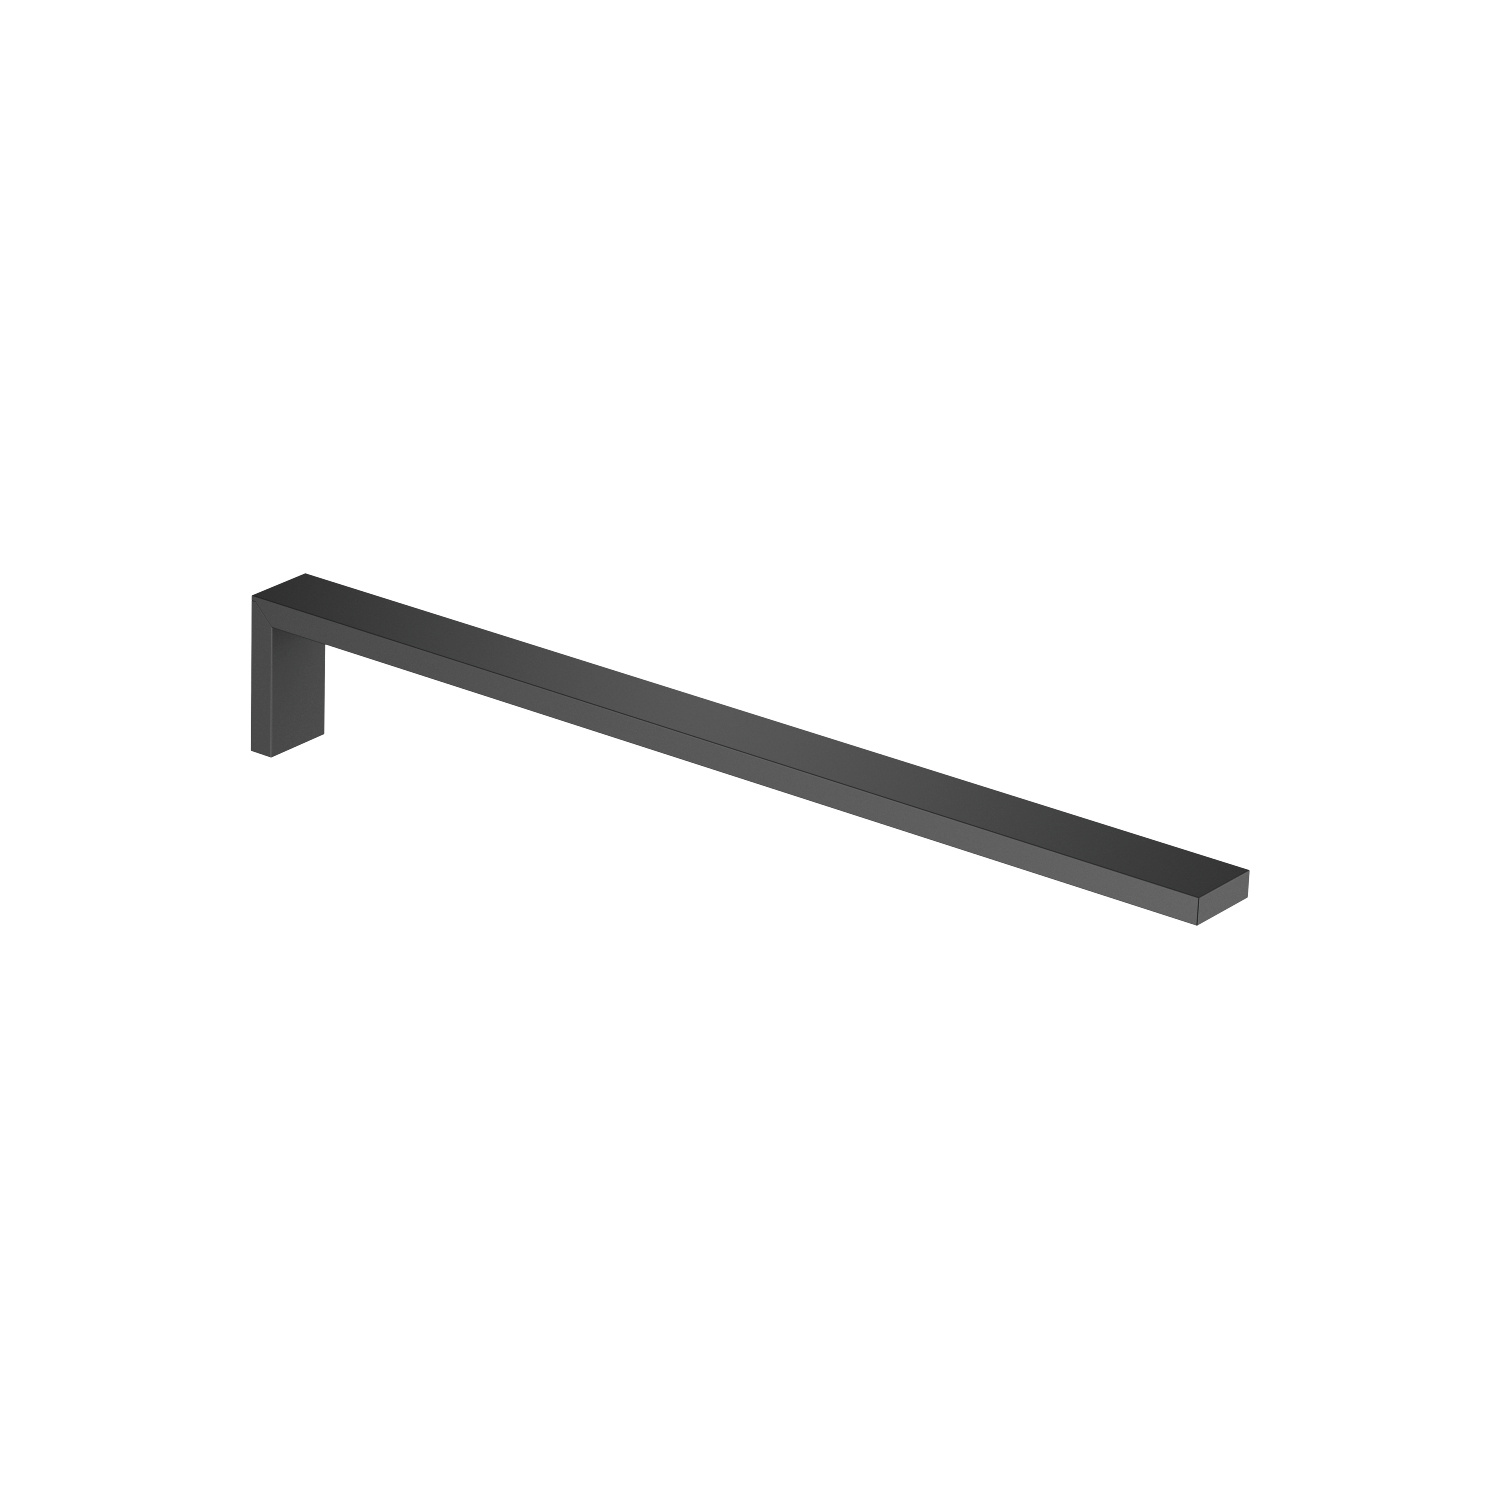 Towel bar 1-piece non-swivel - matt black - 83 211 980-33